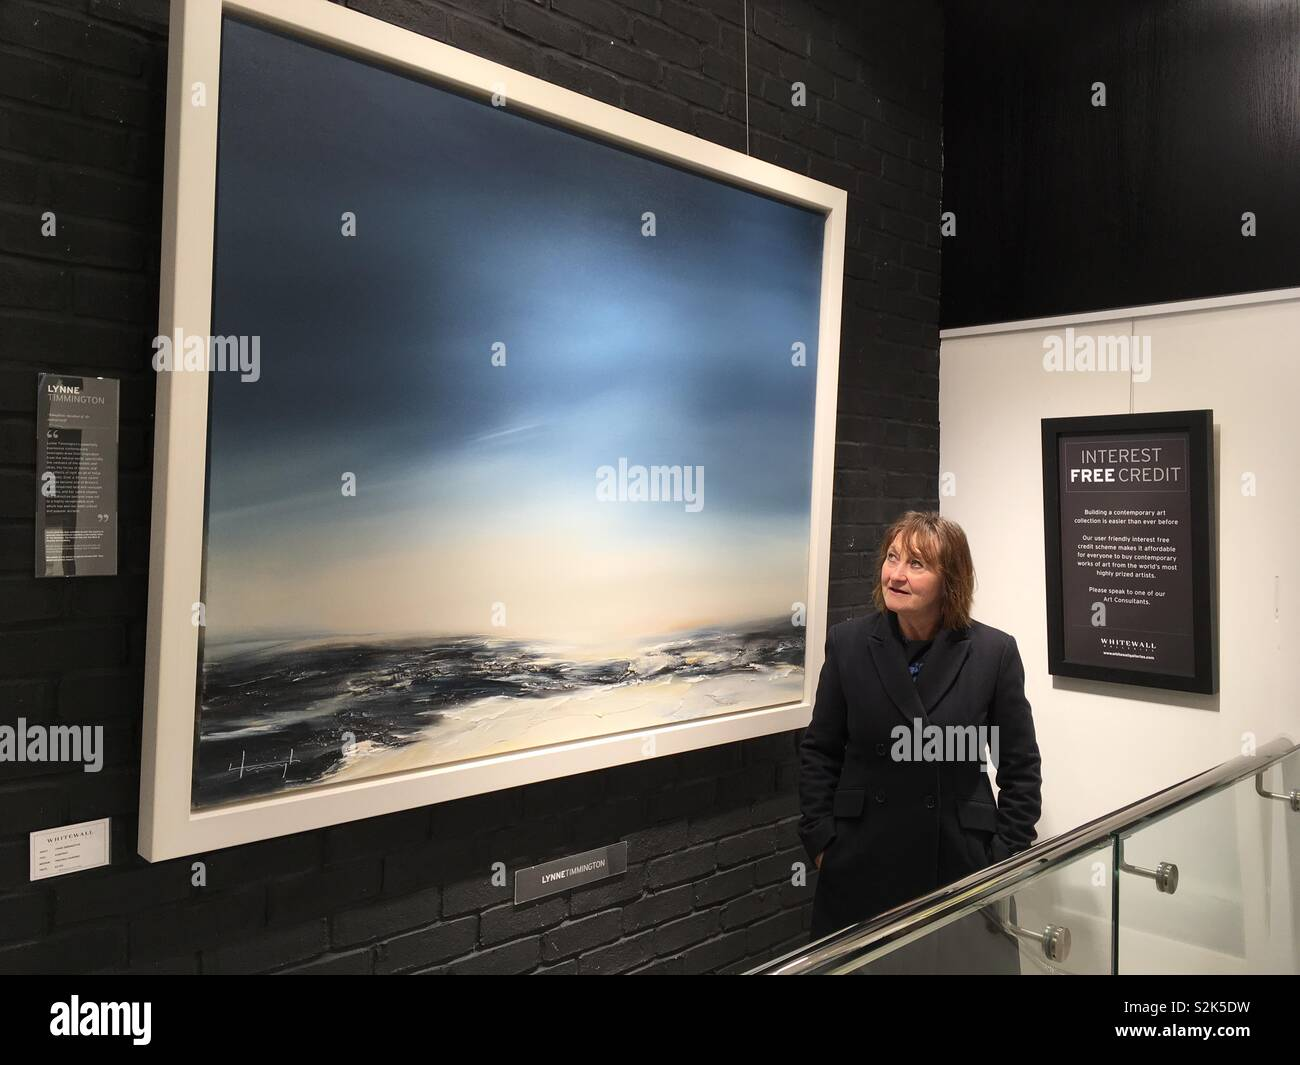 Artist Lynne Timmington with her 5ftx4ft painting on sale in Whitewall Gallery. - Stock Image